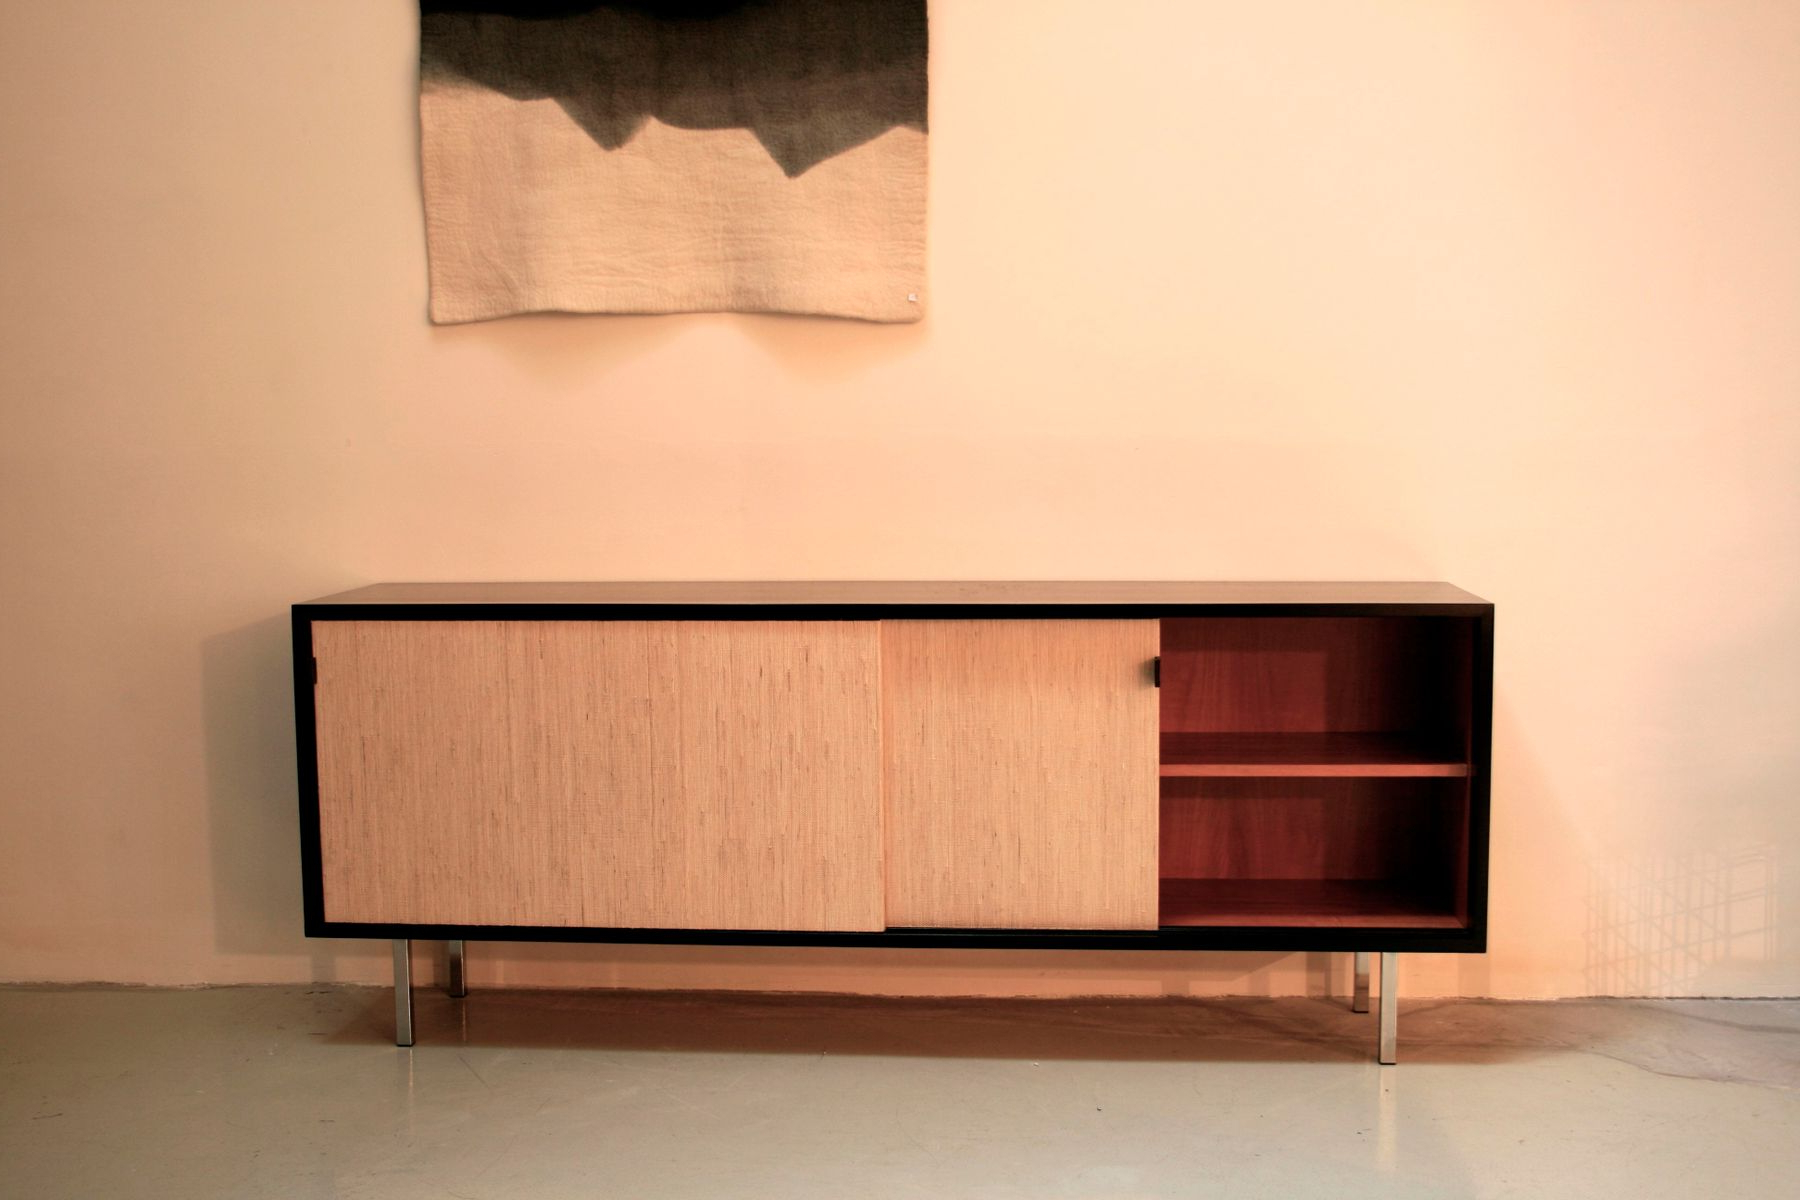 2018 Mid Century Sideboardflorence Knoll Bassett For Knoll Inc, 1950S With Regard To Girard 4 Door Sideboards (View 20 of 20)